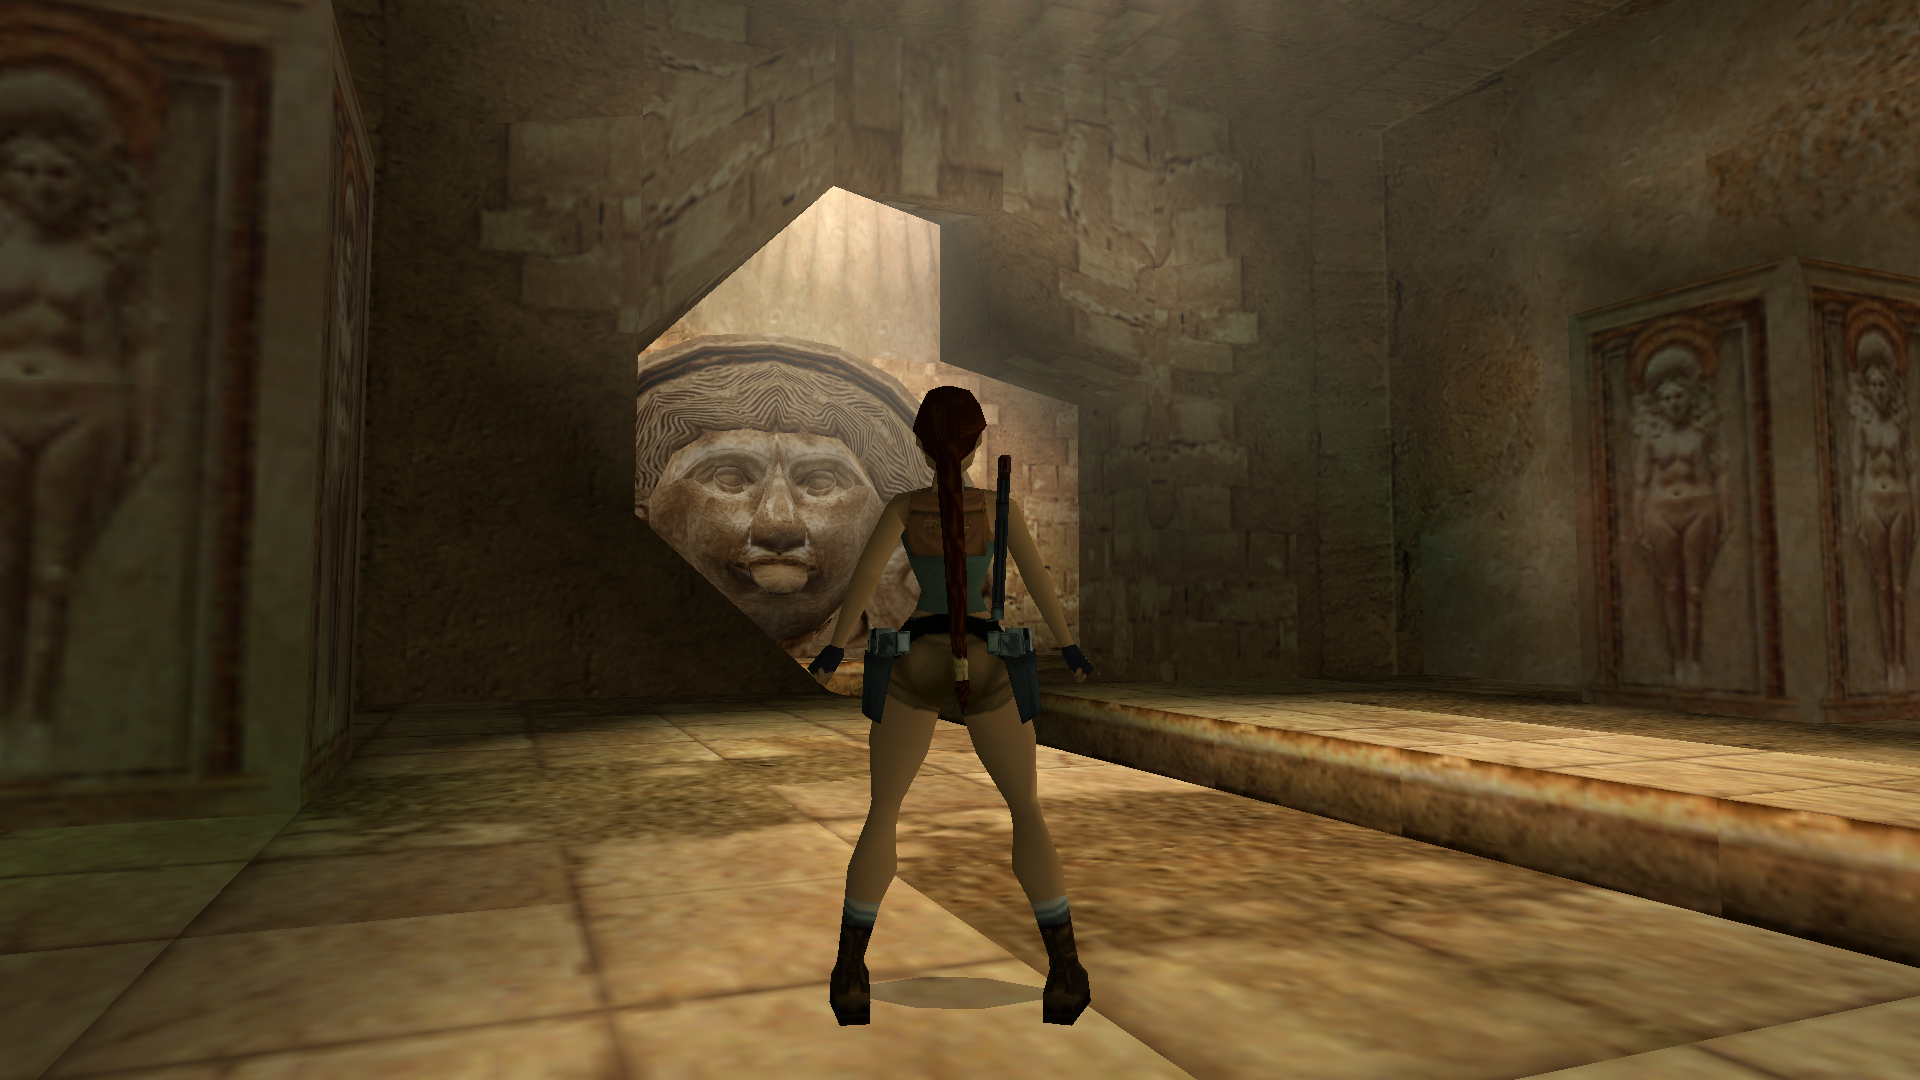 Tomb Raider 4 - Temple of Poseidon original